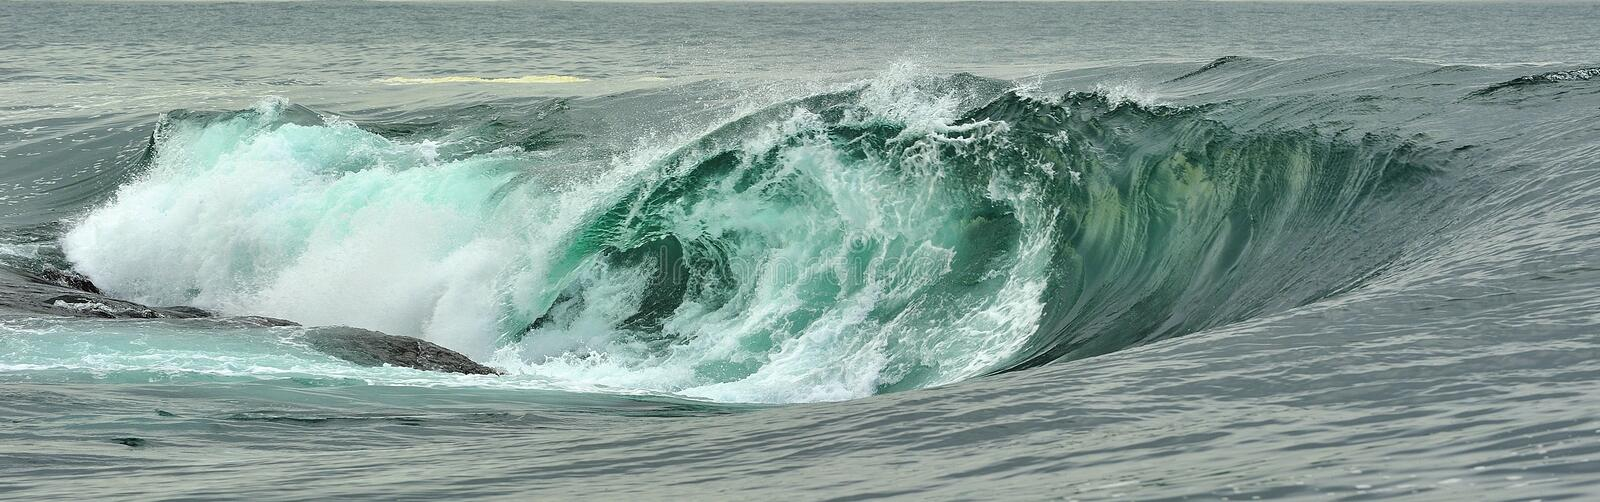 Powerful ocean wave breaking. Wave on the surface of the ocean. Wave breaks on a shallow bank. Natural background stock photo